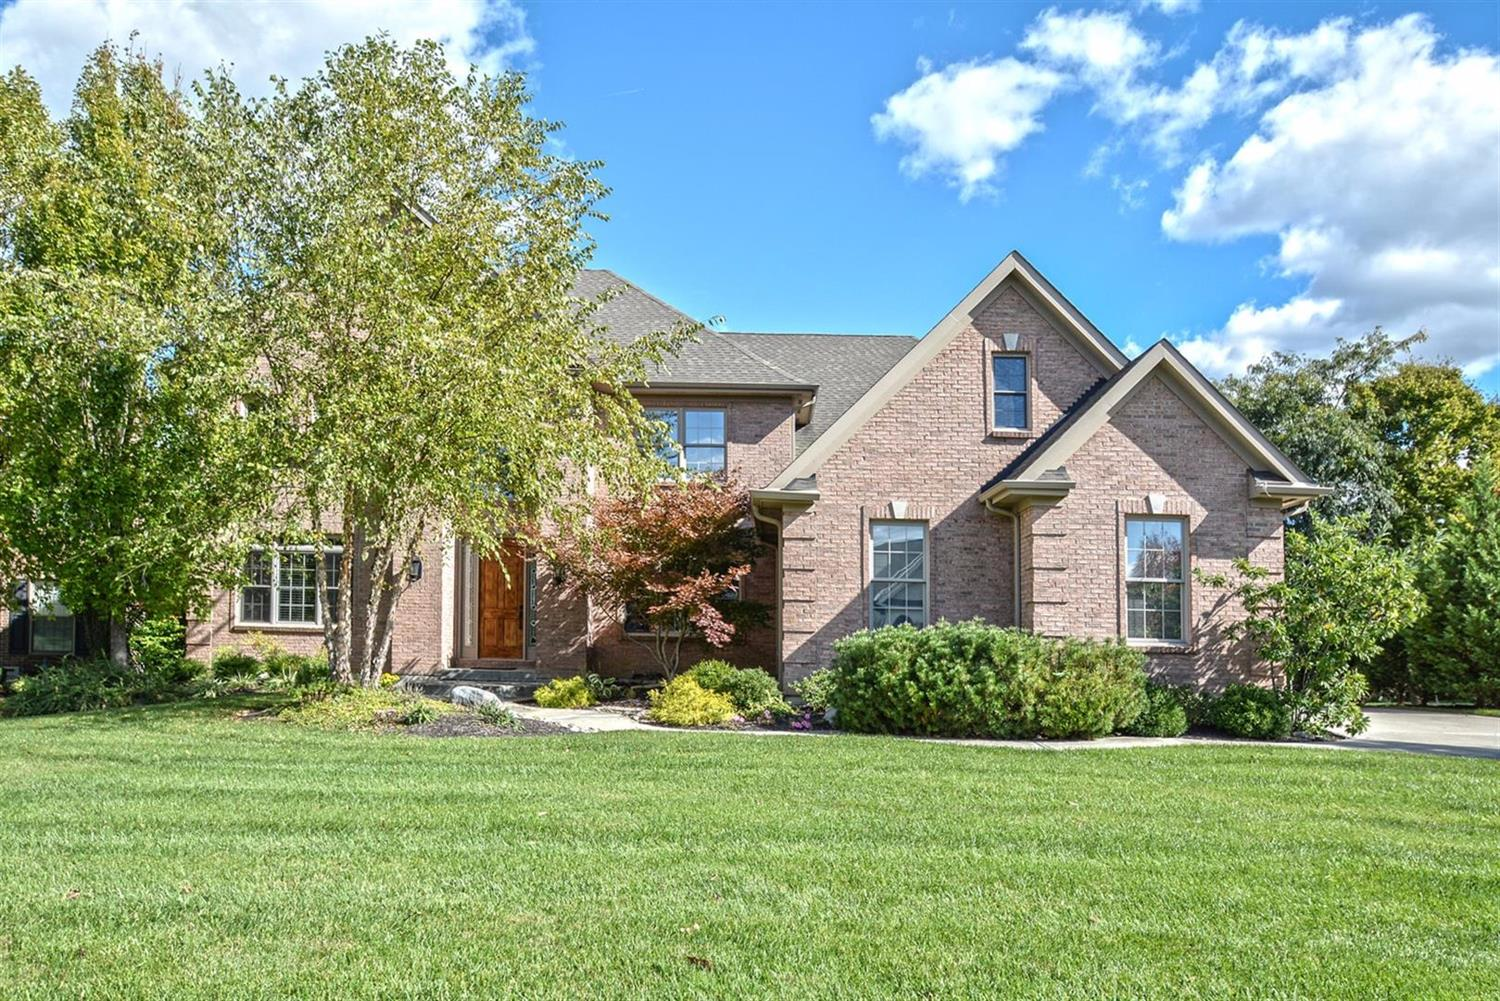 3984 The Ridings, Deerfield Twp., OH 45040